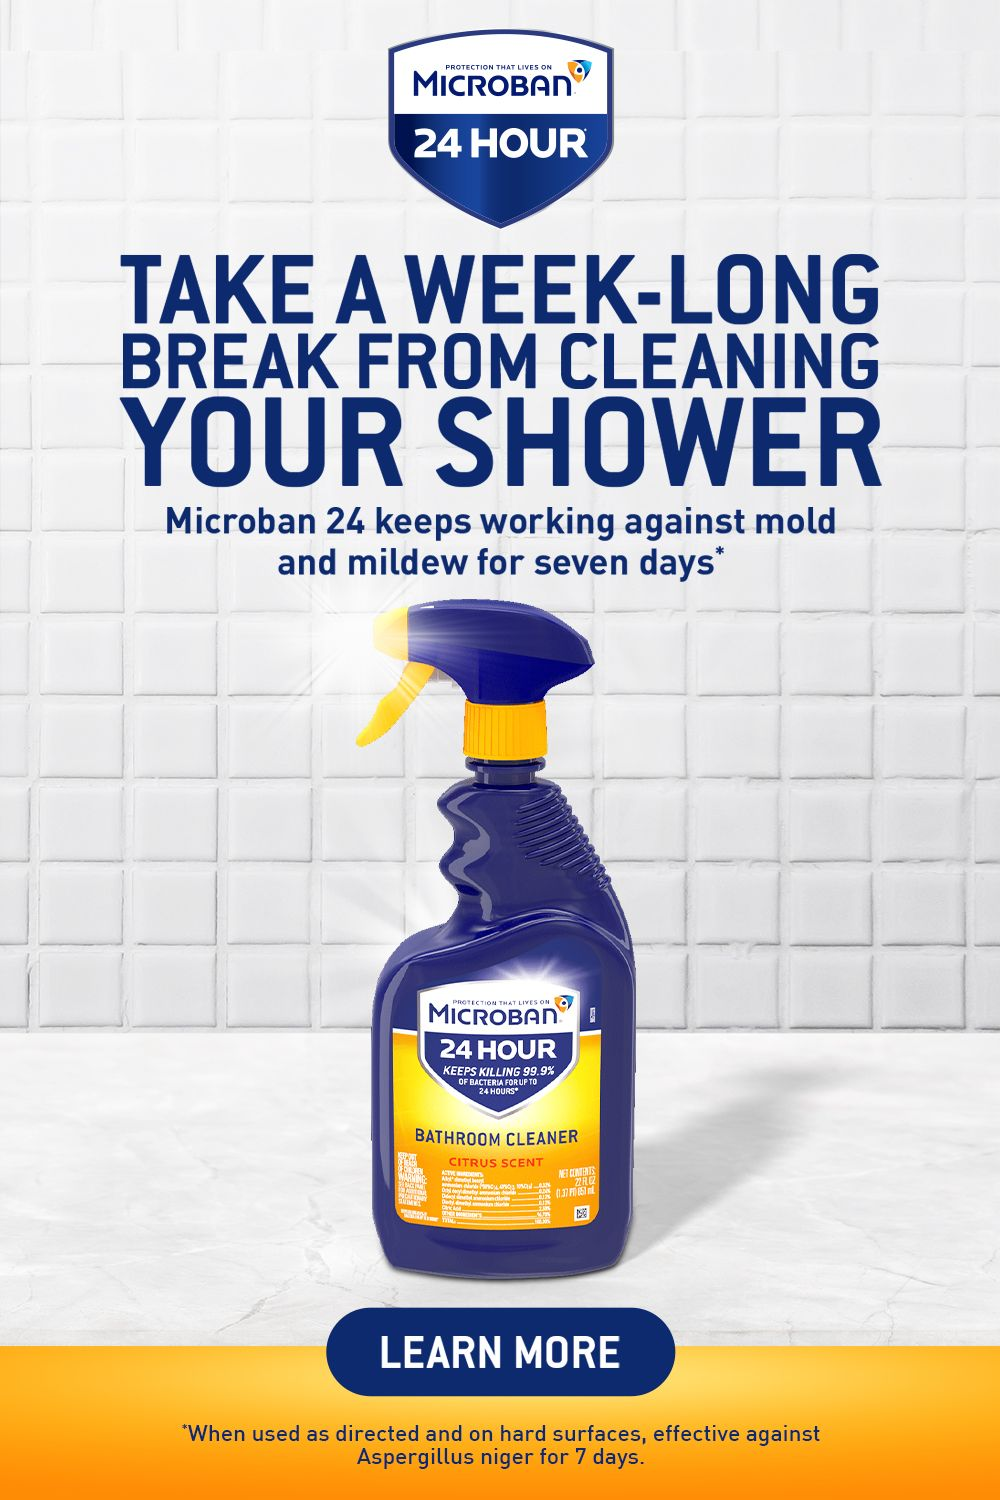 7 Days Of Mold Mildew Protection In Your Shower With Microban 24 In 2020 Household Cleaning Tips Diy Home Cleaning House Cleaning Tips